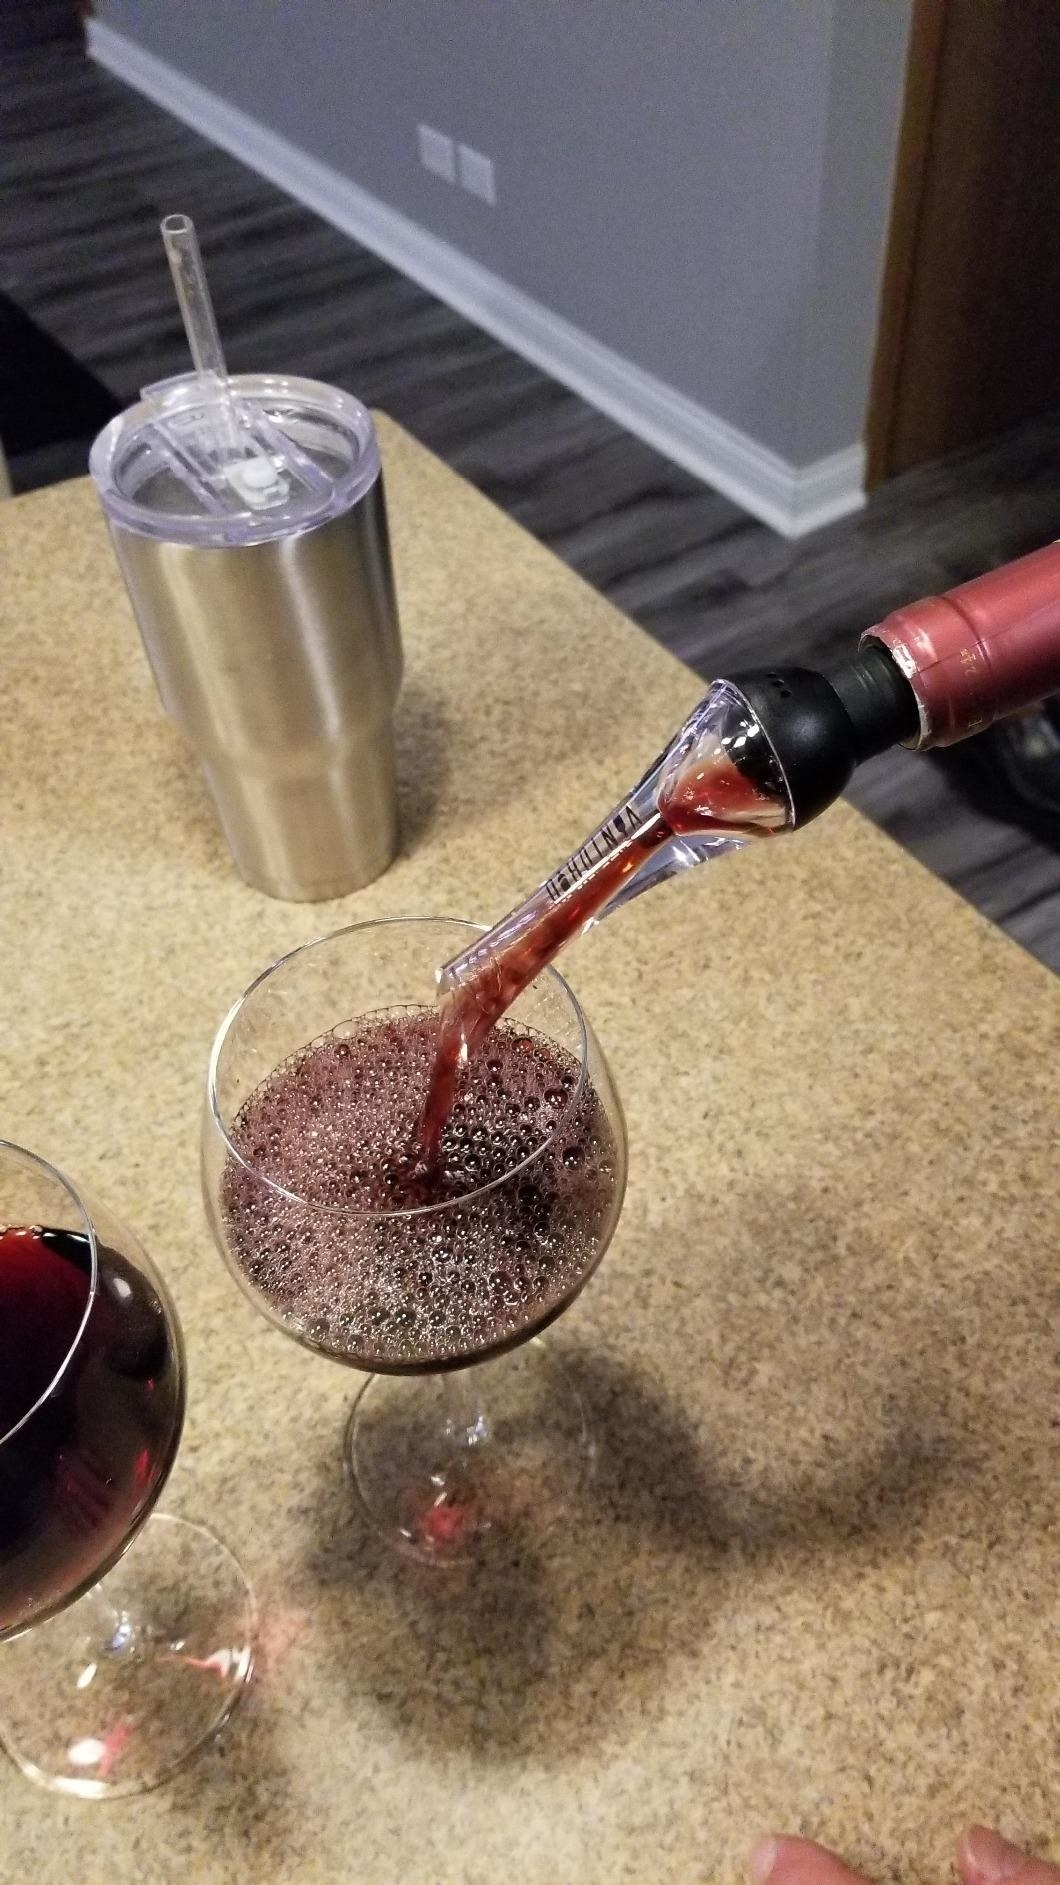 A reviewer using the chute-like attachment to pour a glass of wine